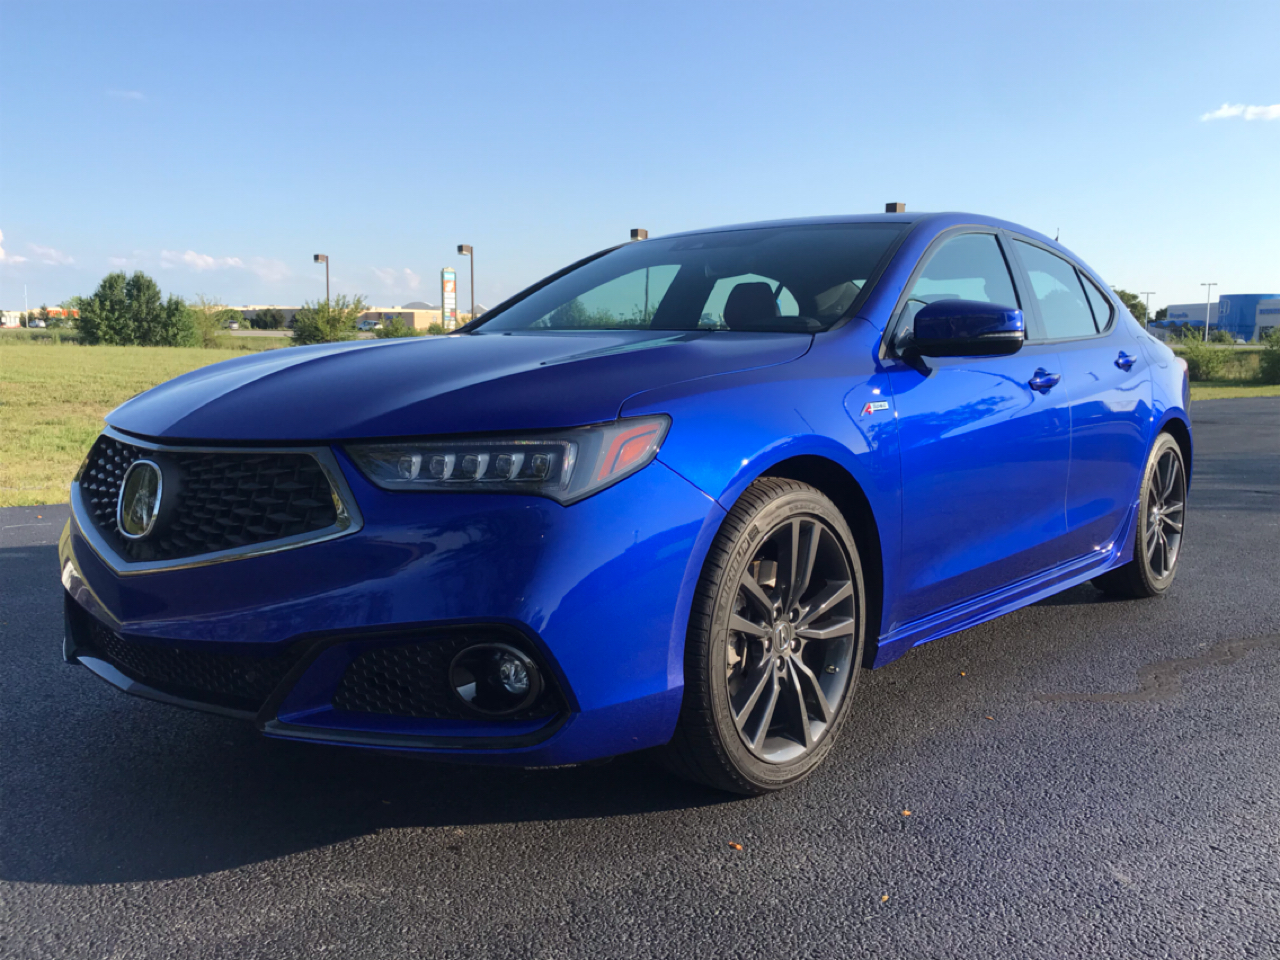 Acura TLX A-Spec Red 2.4L 2020